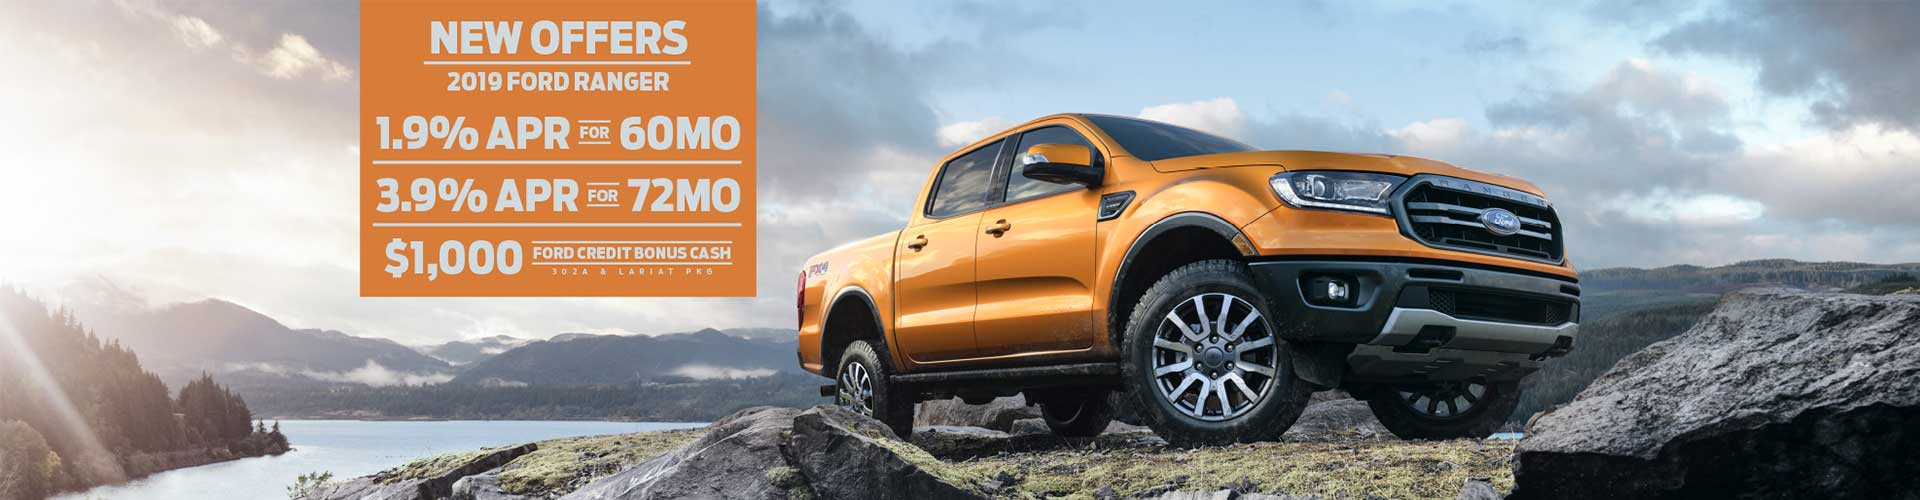 New Offers - Ford Ranger